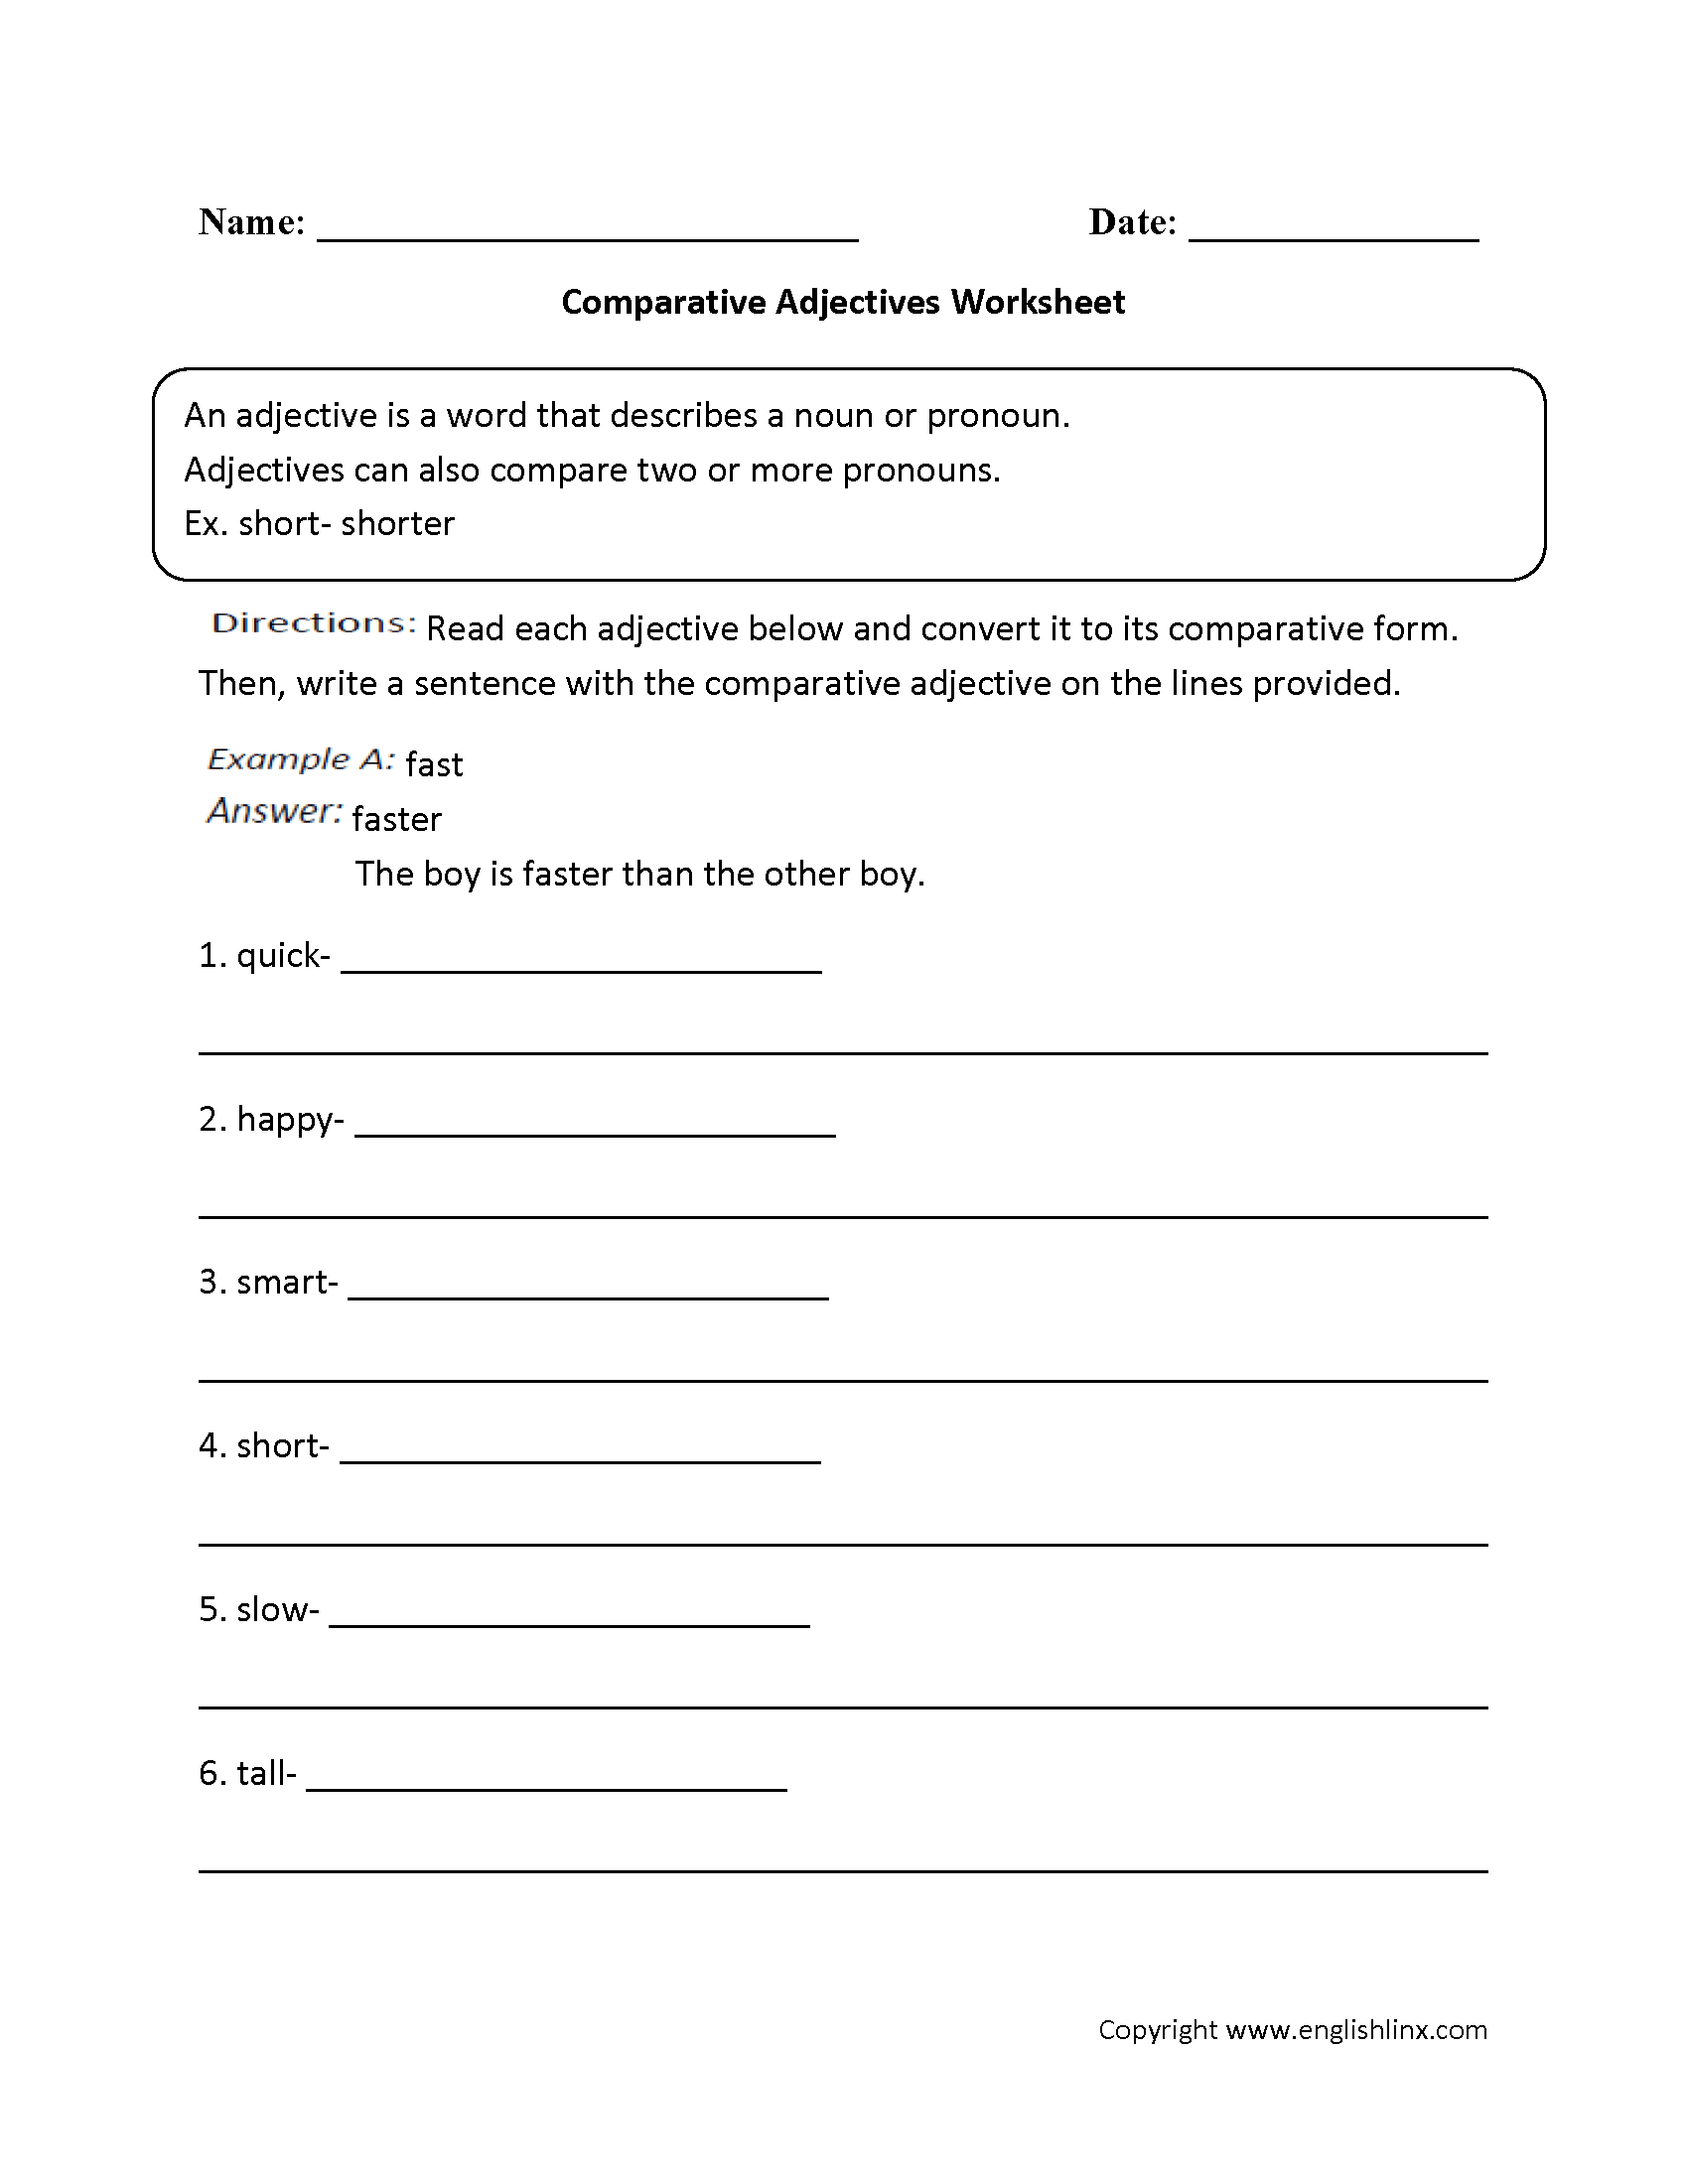 Comparative Adjectives Worksheets